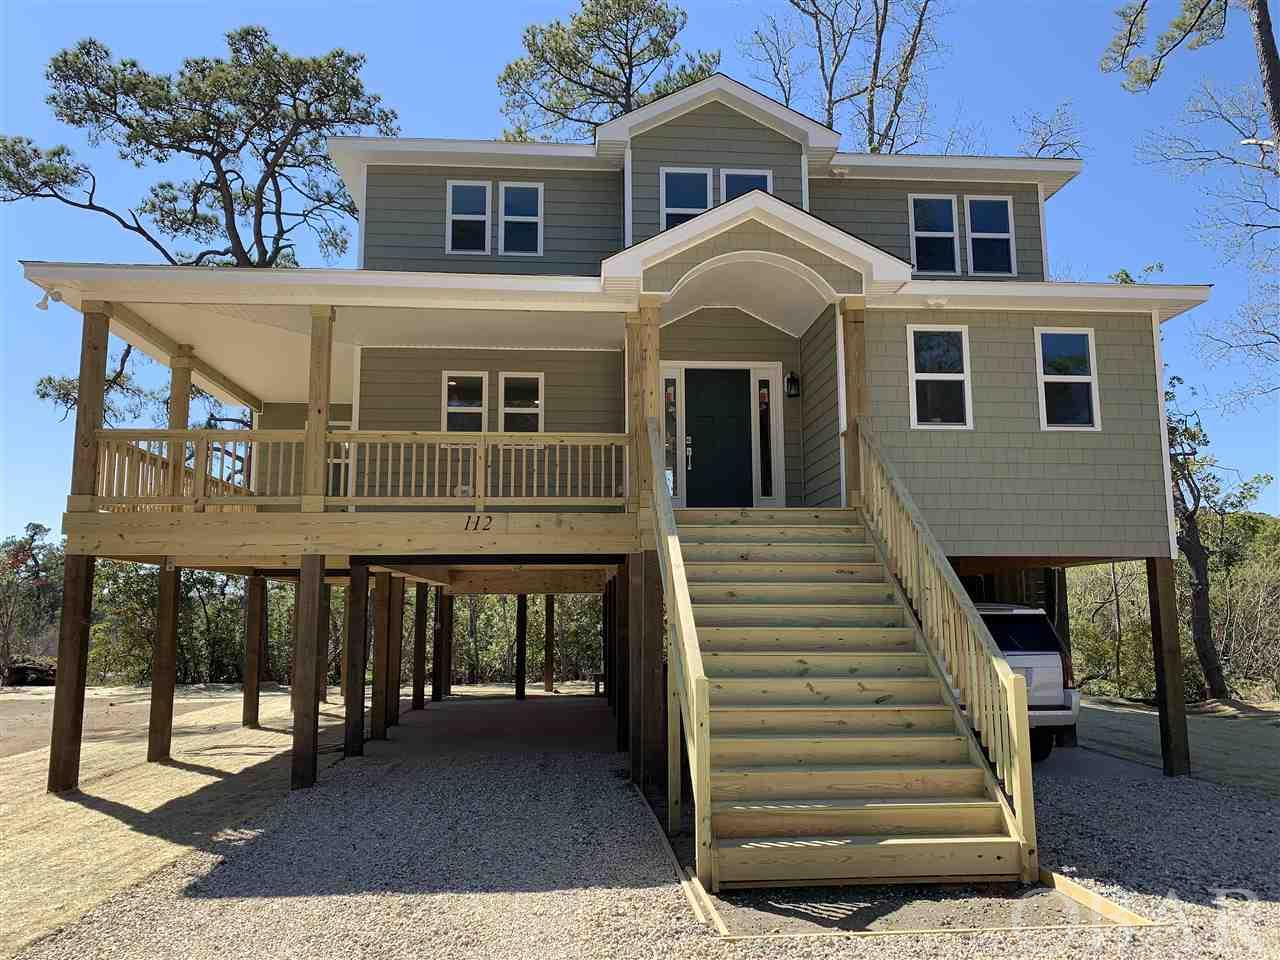 112 Ridge Lane, Kill Devil Hills, NC 27948, 4 Bedrooms Bedrooms, ,3 BathroomsBathrooms,Residential,For sale,Ridge Lane,103432